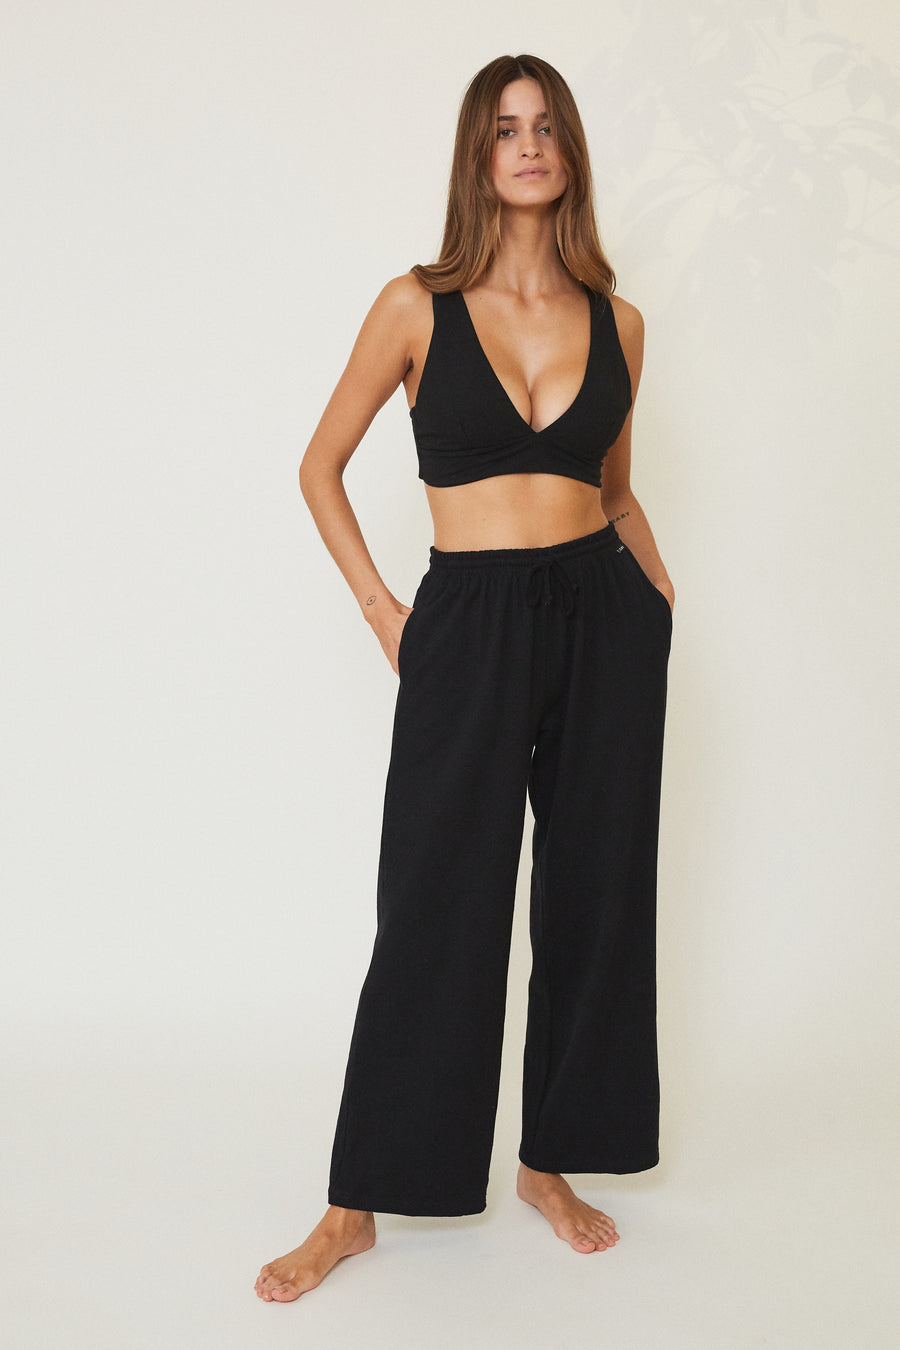 Berta Organic Cotton Bralette - Black